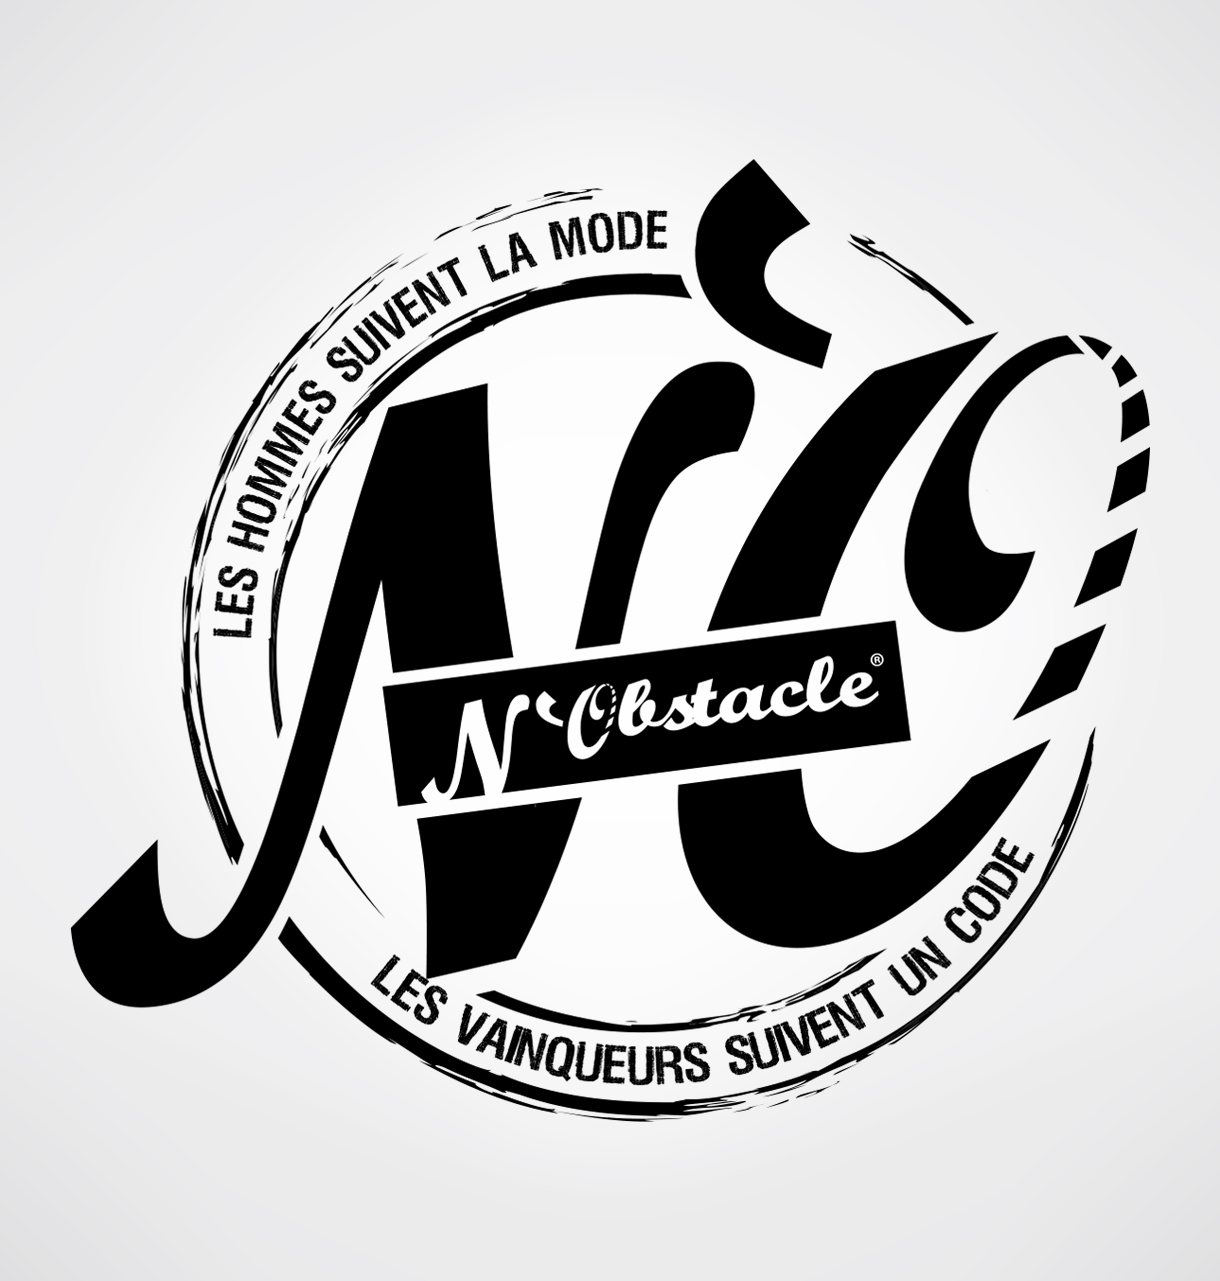 Cration logo marque sport streetwear nobstacle paris marque sportwear et streetwear nobstacle altavistaventures Images